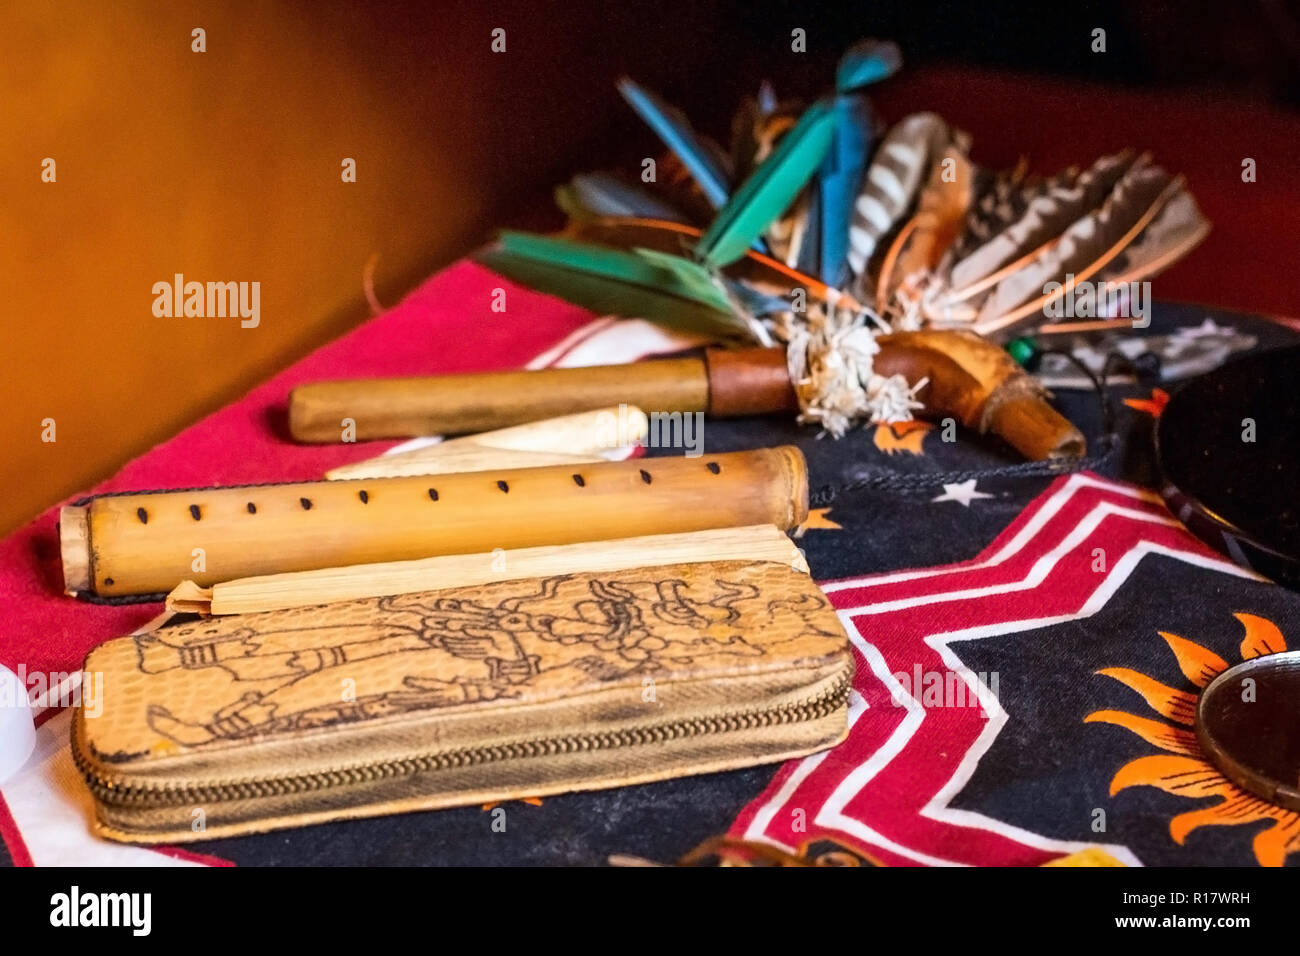 Shamanism Healer Stock Photos & Shamanism Healer Stock